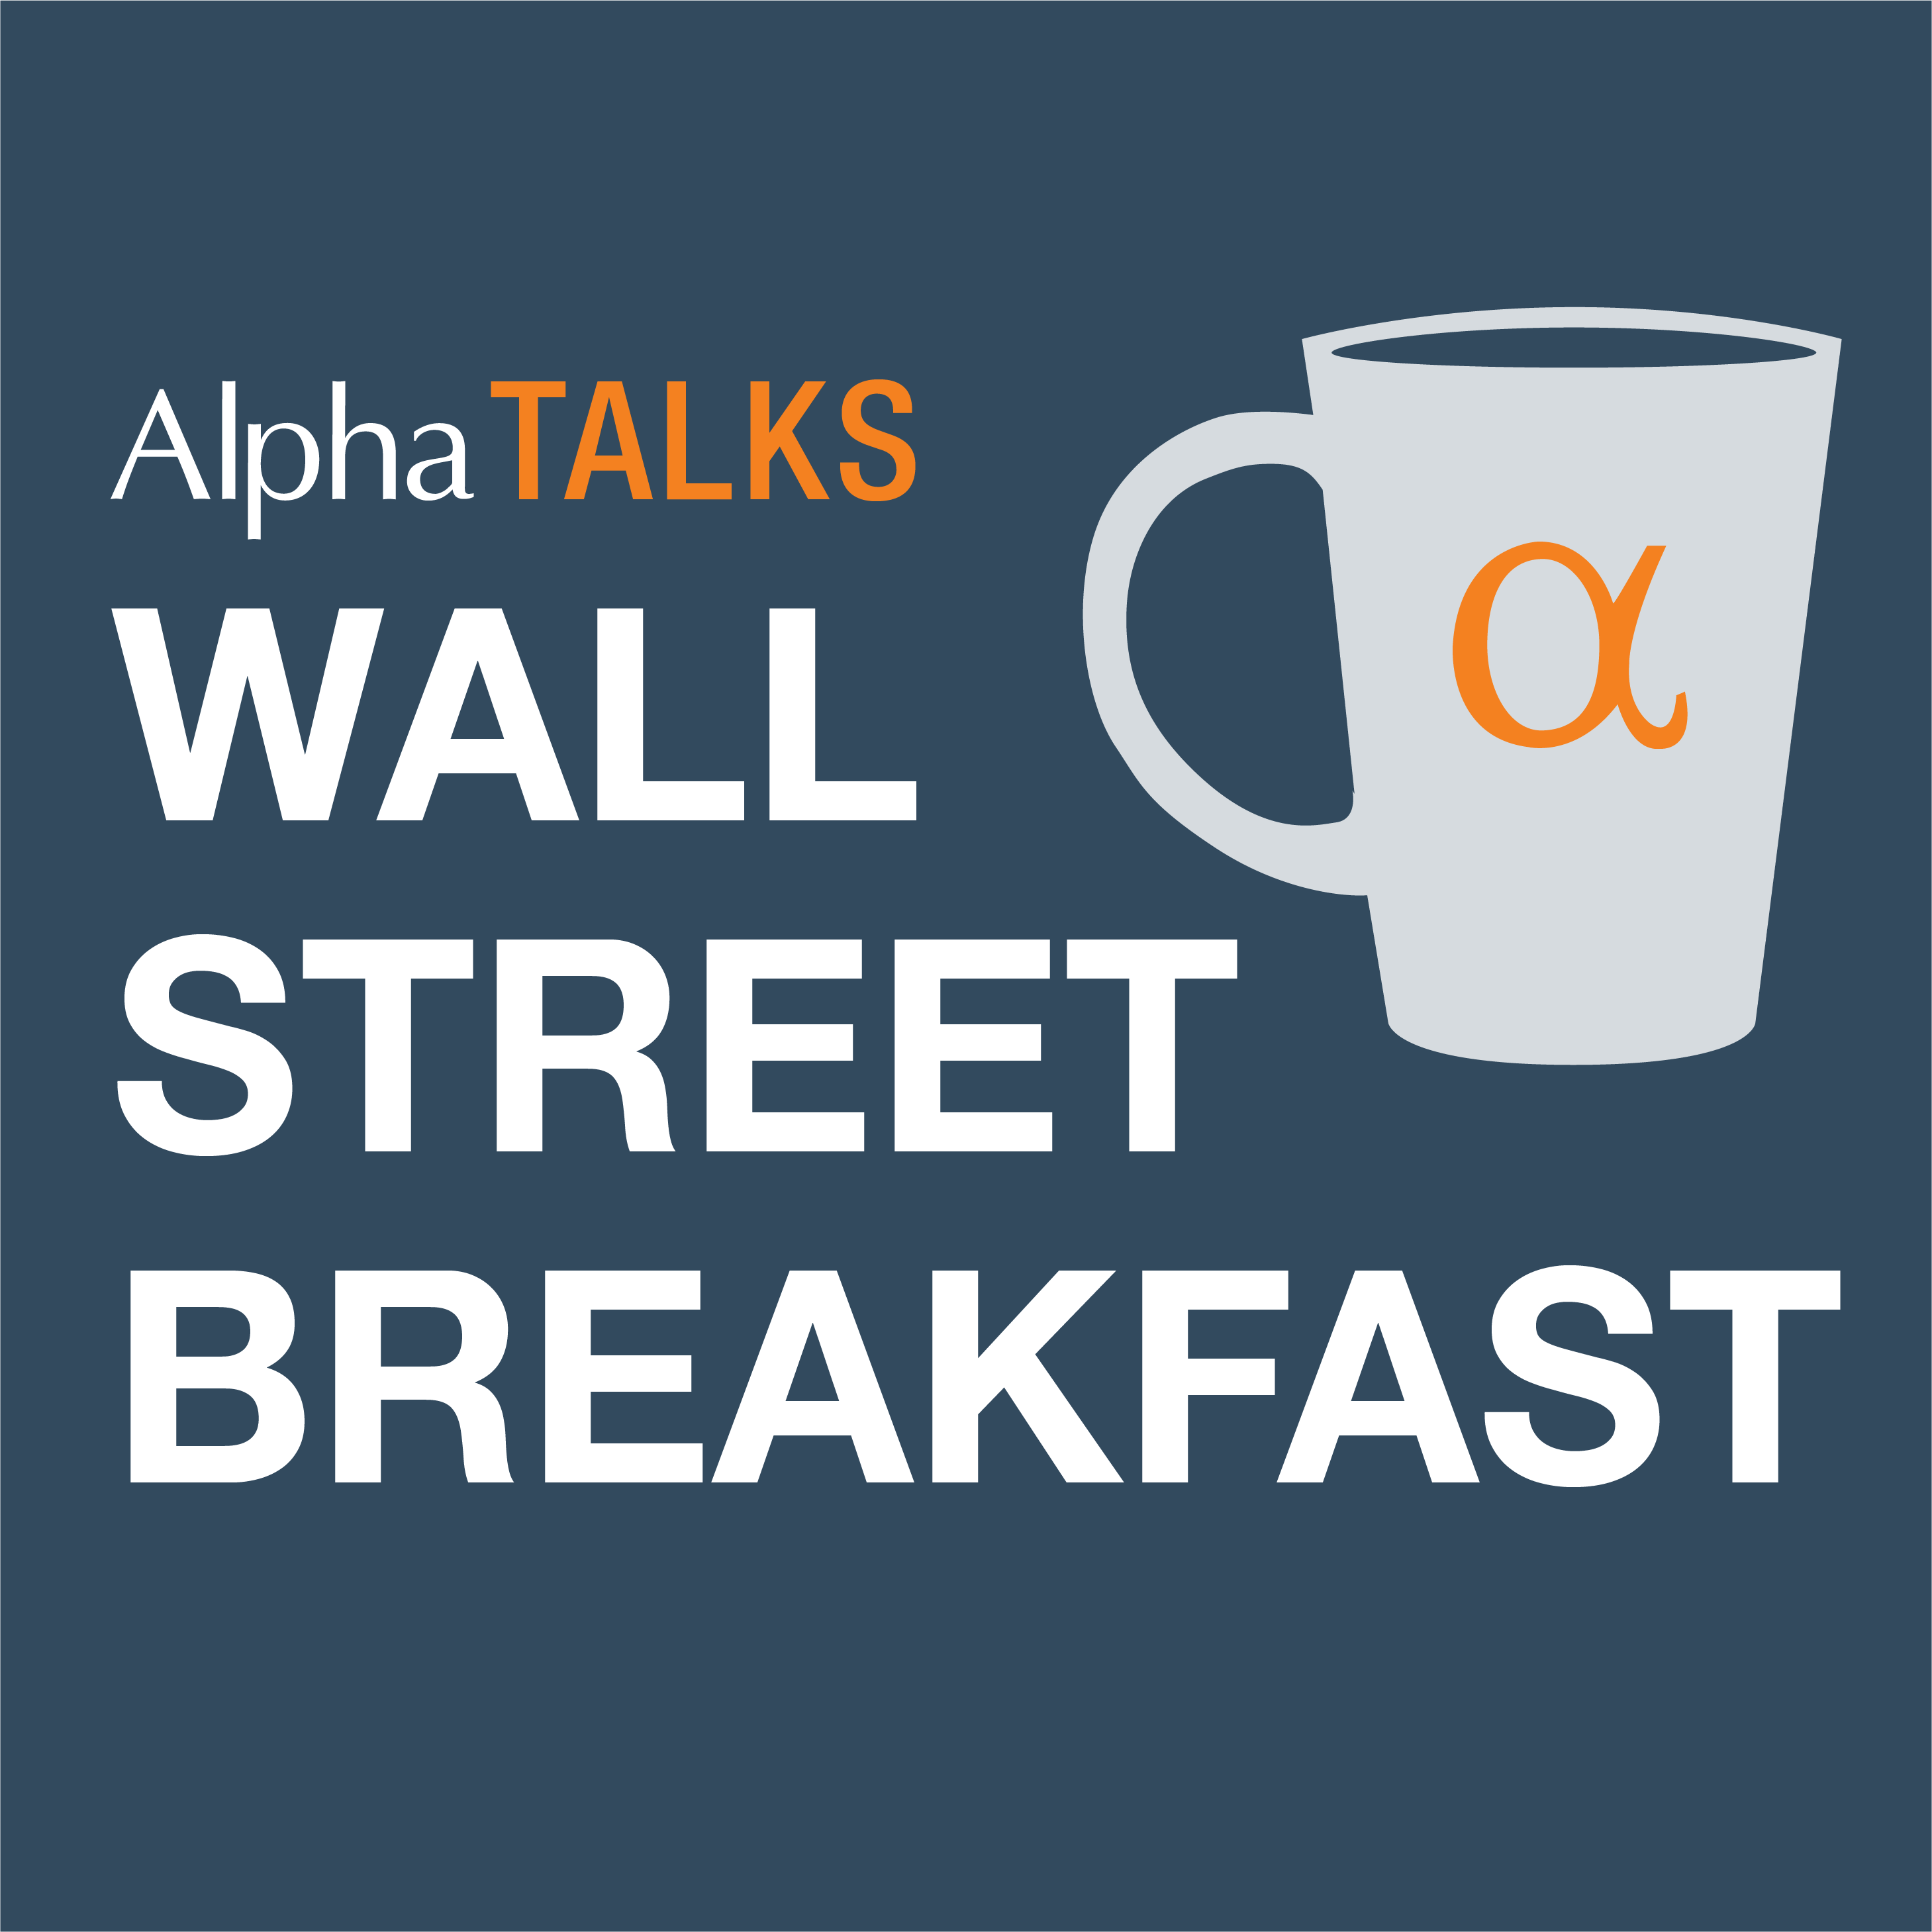 AlphaTALKS Wall Street Breakfast, May 8: What Moved Markets This Week